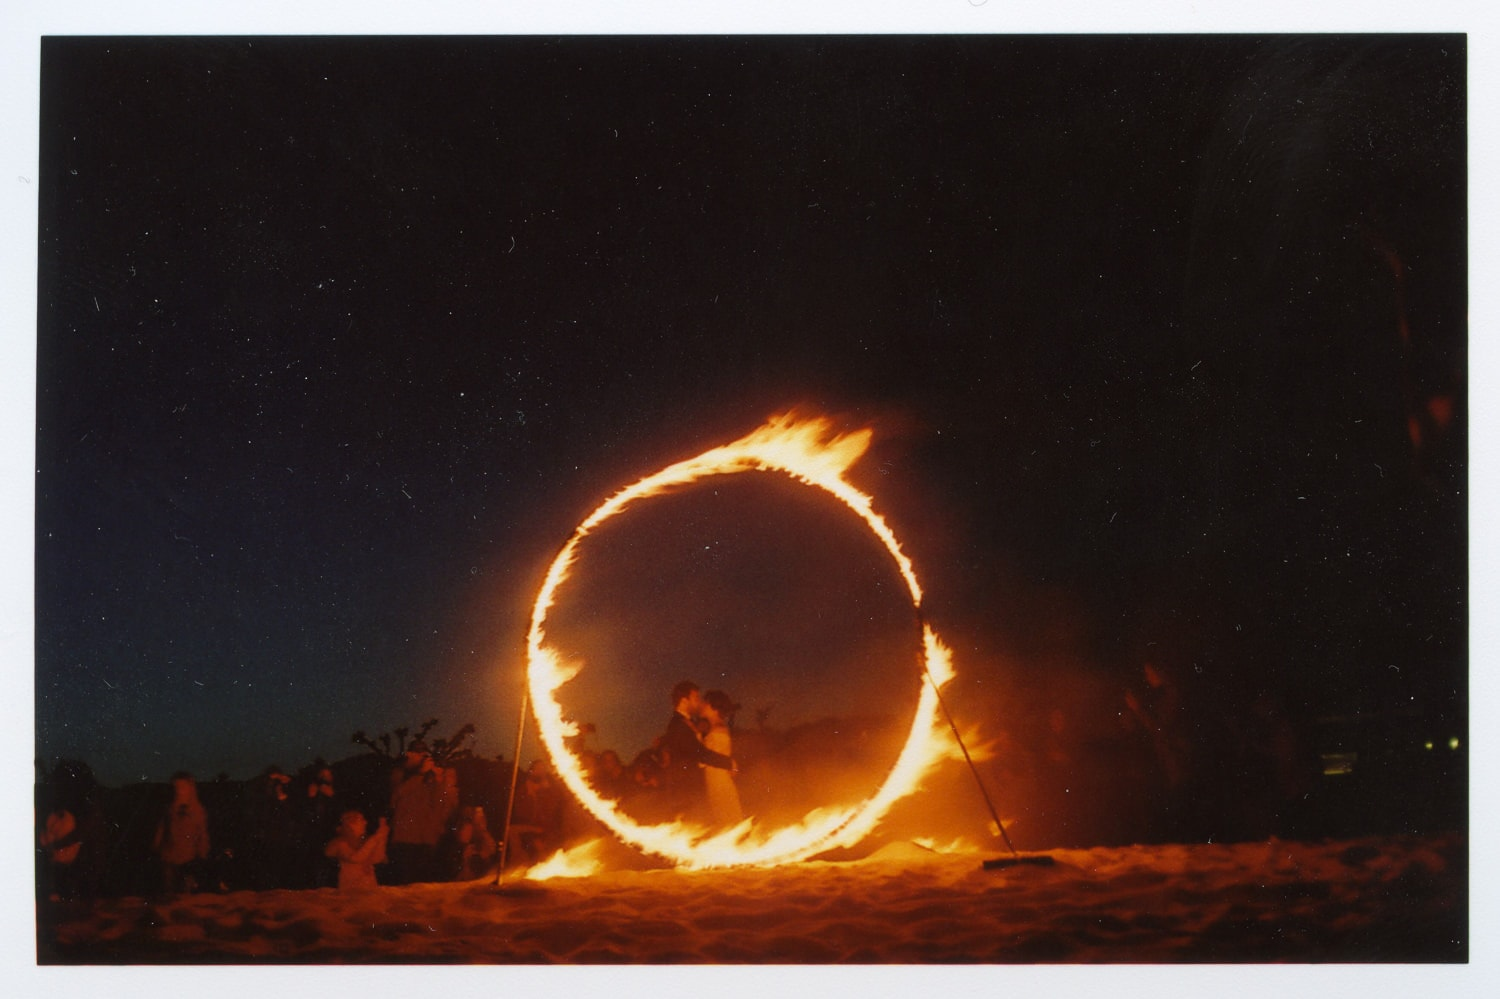 ring of fire in a photoshoot at the beach